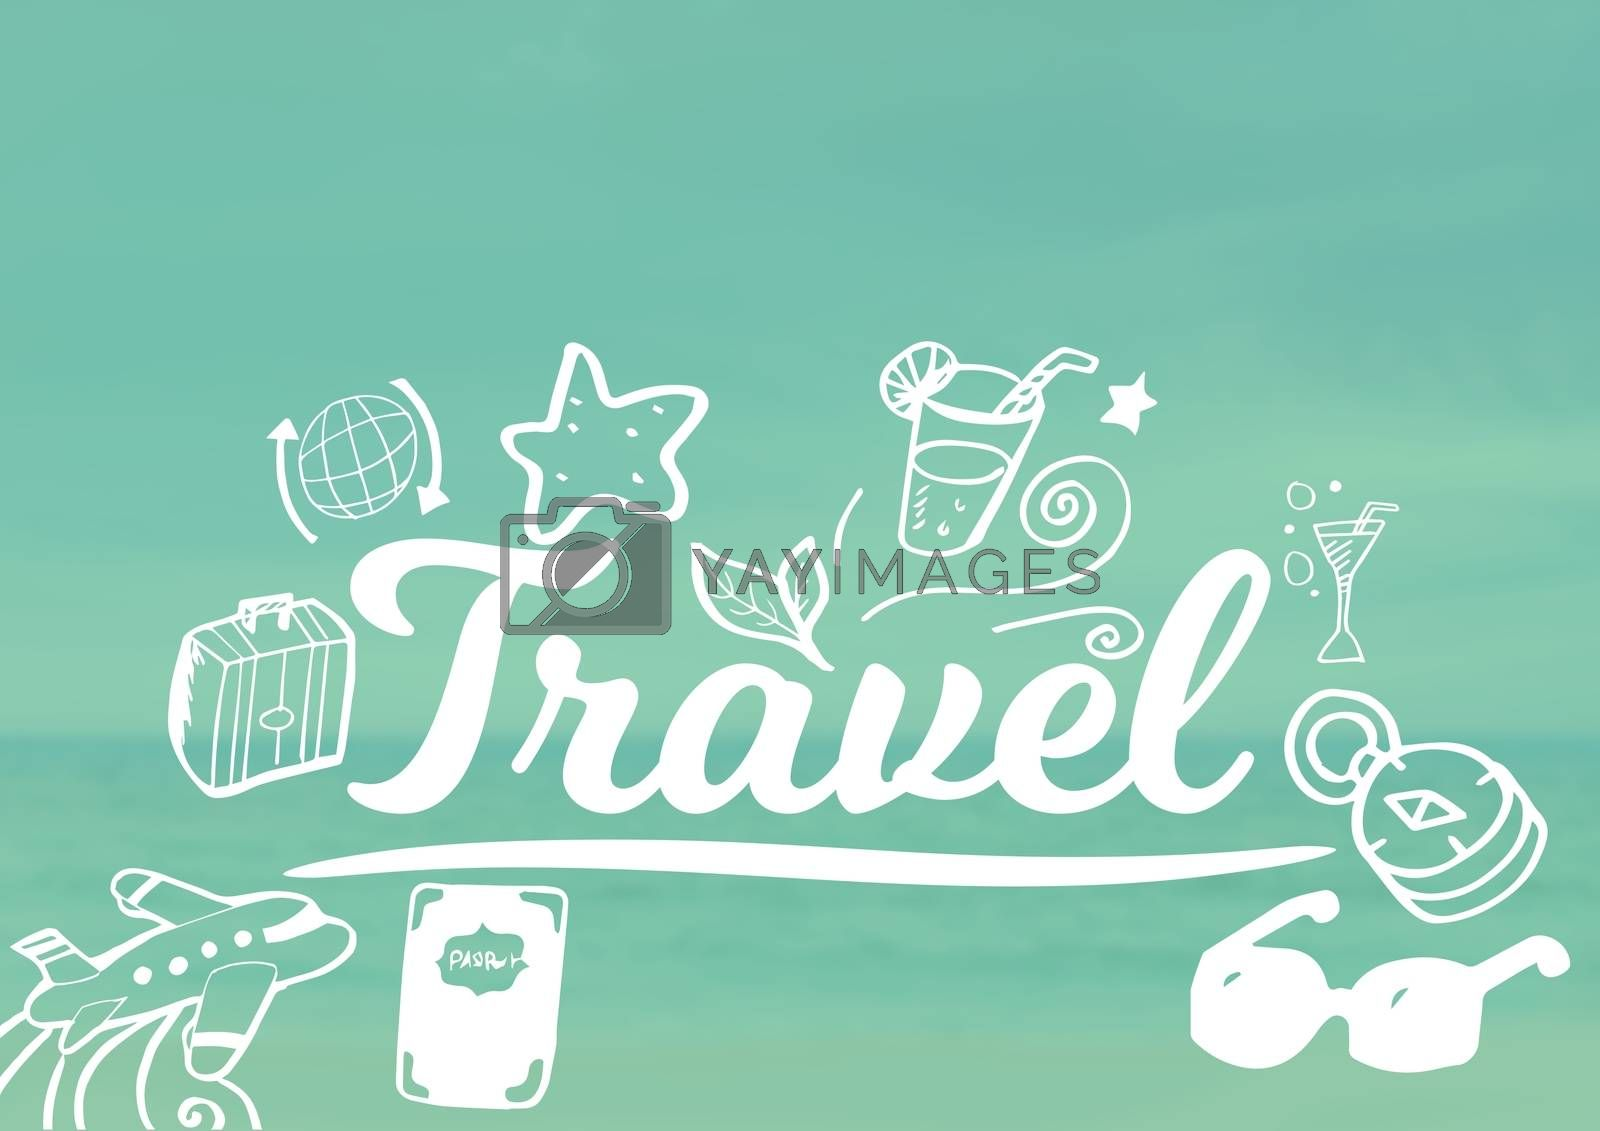 Travel text with drawings graphics by Wavebreakmedia